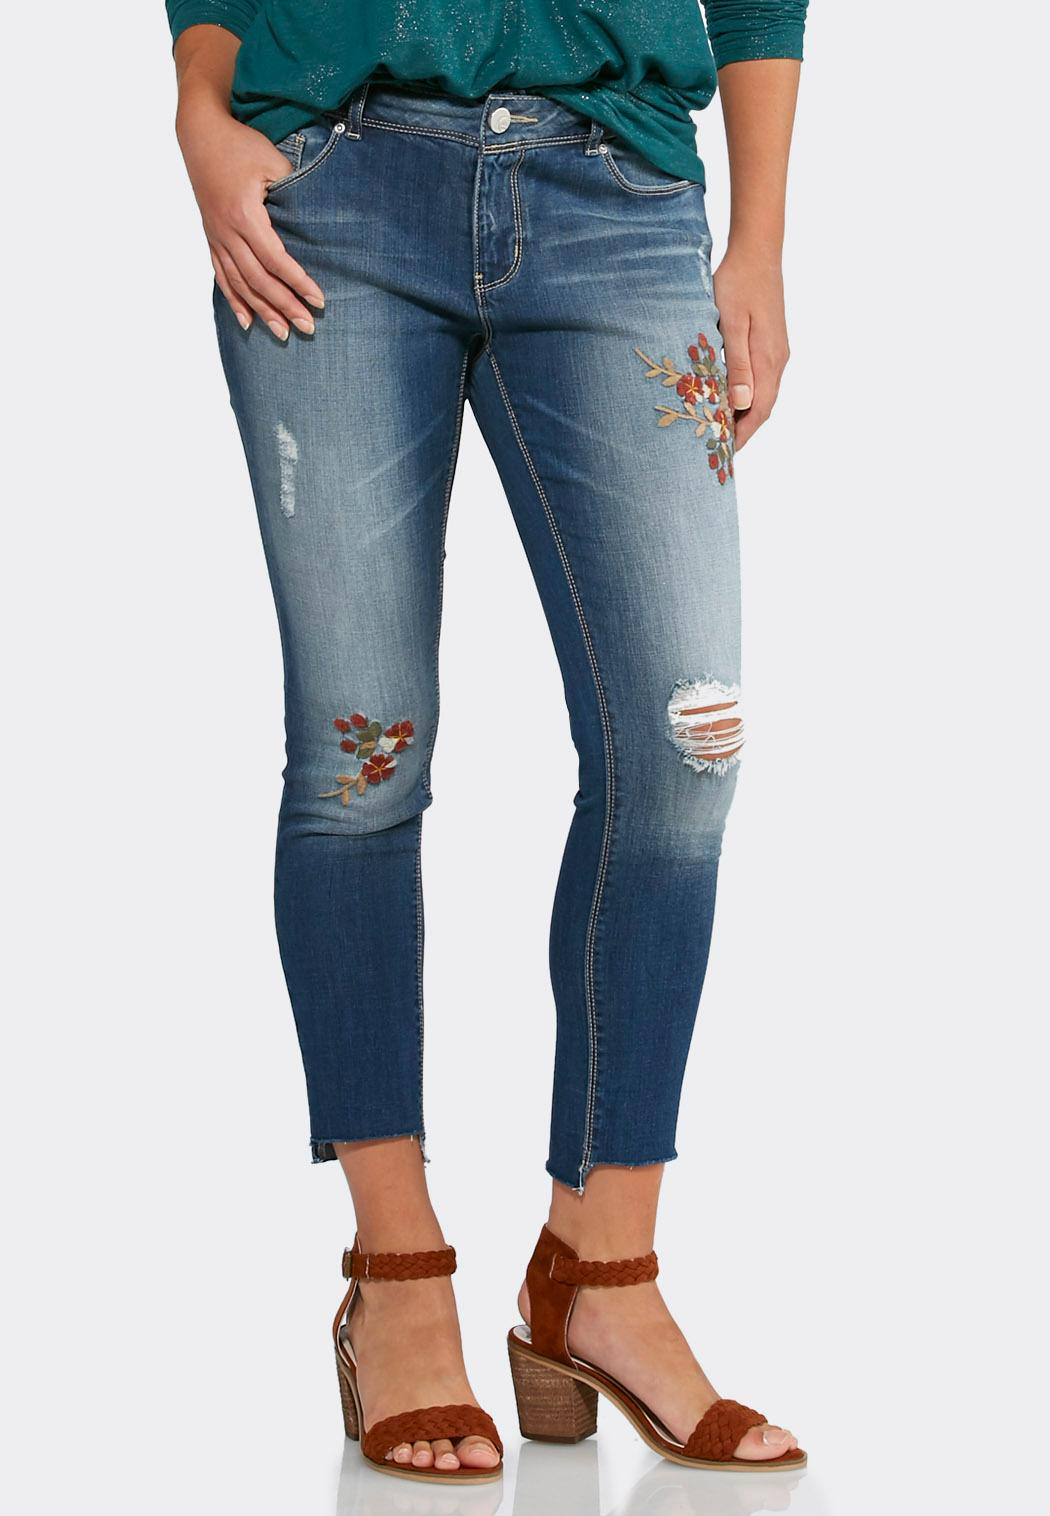 Ankle pants are more of a modern, comfortable look, no matter the size of the lady whether slim or petite. For shaping for more curvy or plus size ladies, these pants will make every women feel like a fashionista and more confident about their body.